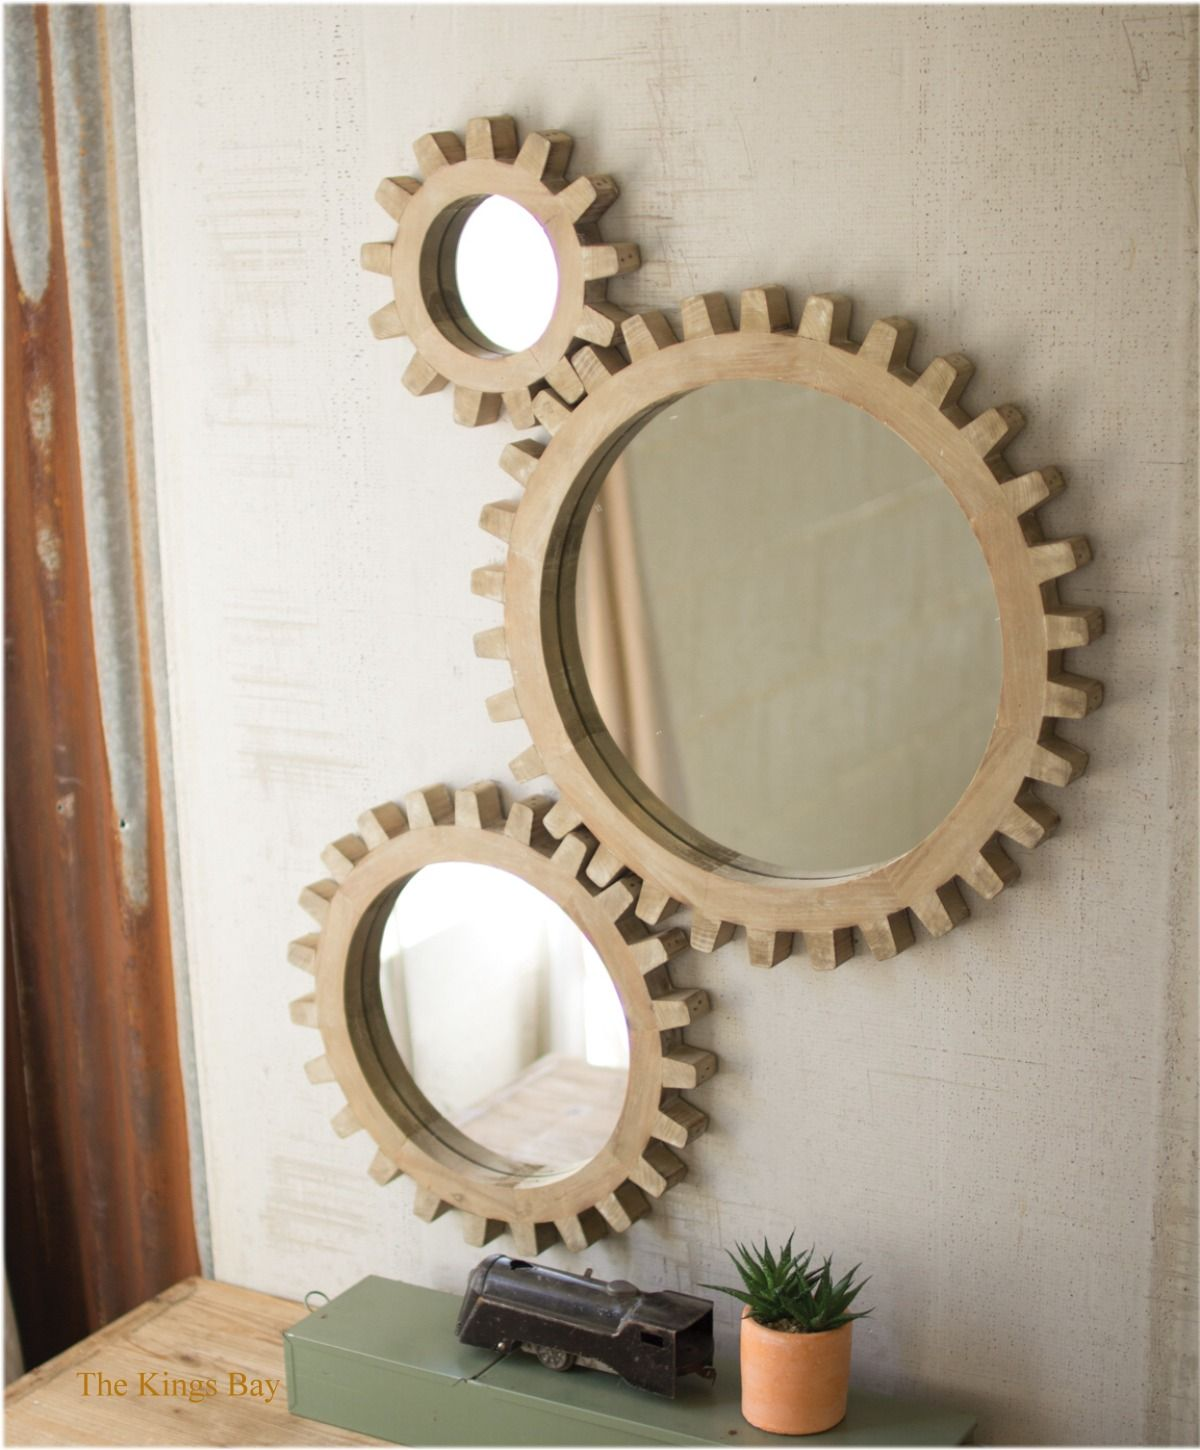 Wood Cog Gear Set Of 3 Mirrors From Old Factory Foundry Vintage Era The Kings Bay Modern Mirror Wall Mirror Wall Decor Mirror Design Wall